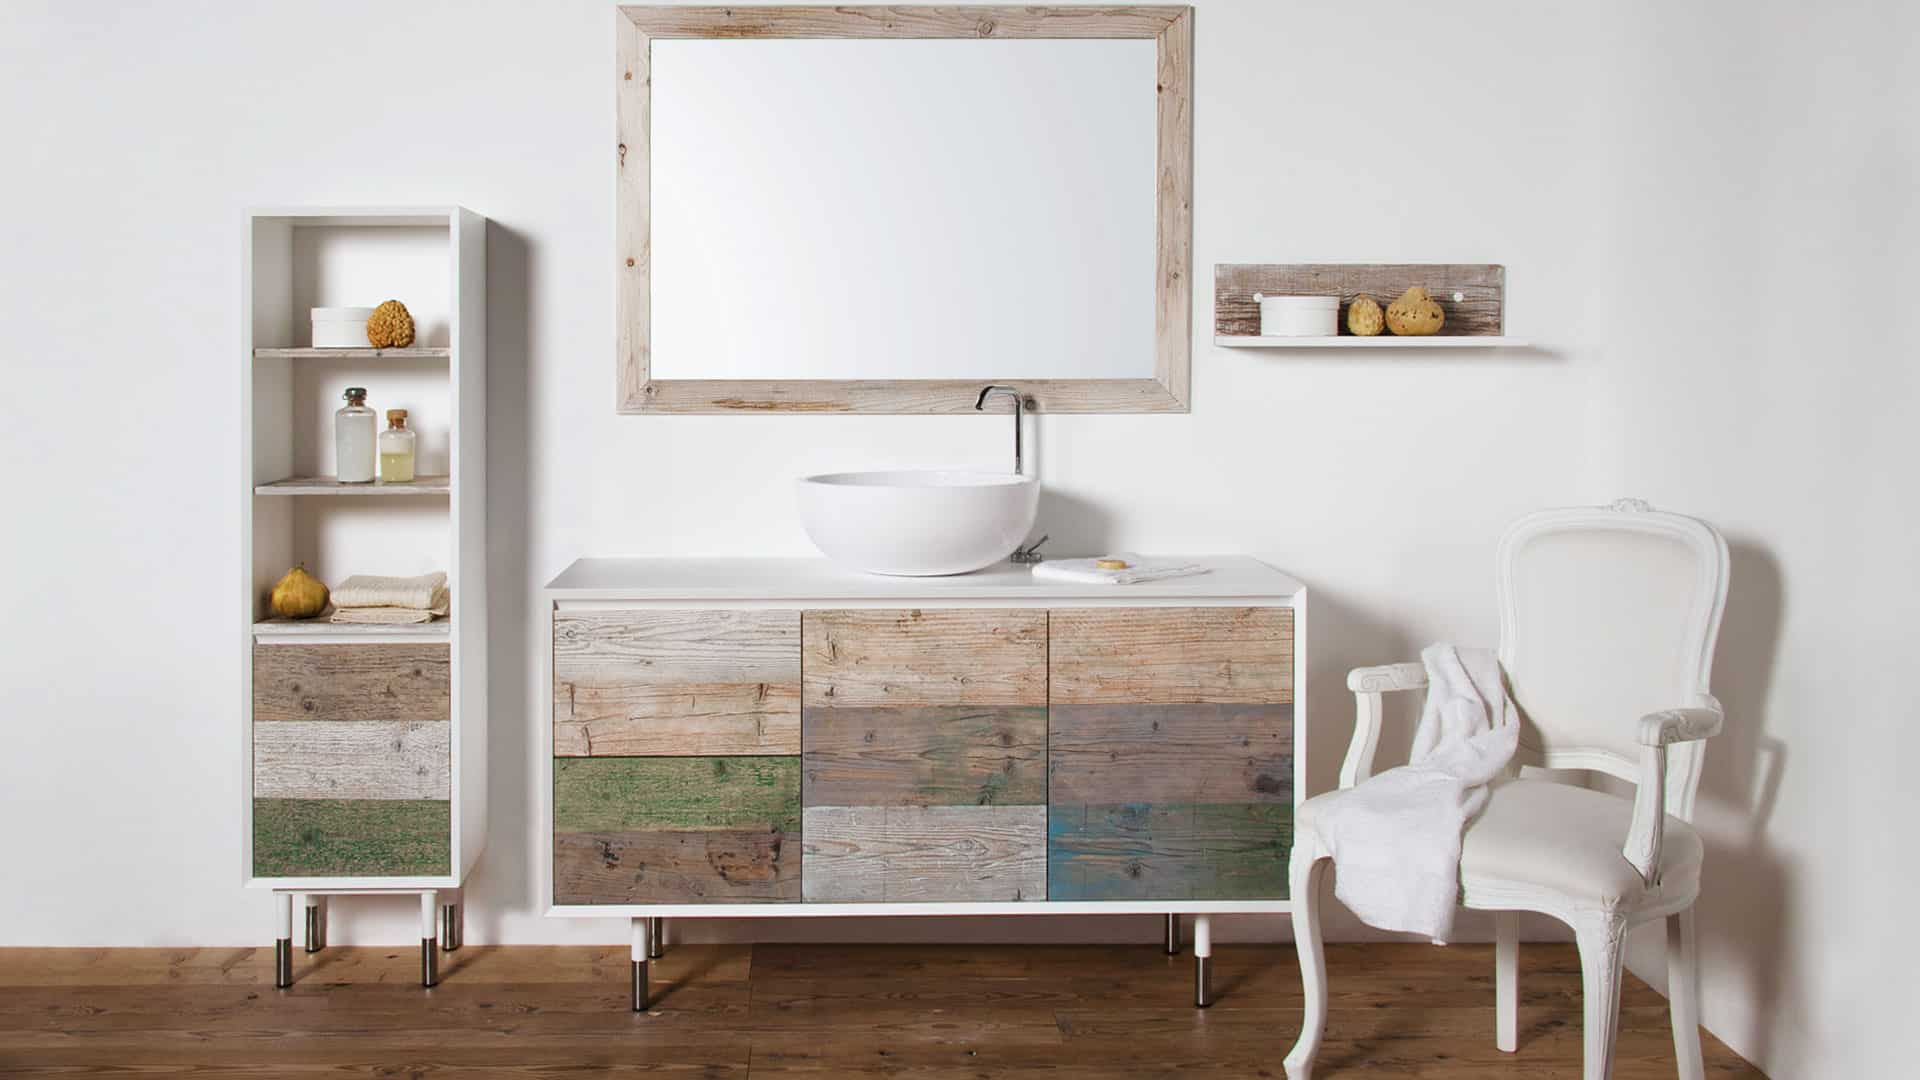 bow bathroom fronted double cabinet wood sink bowl vanity weathered